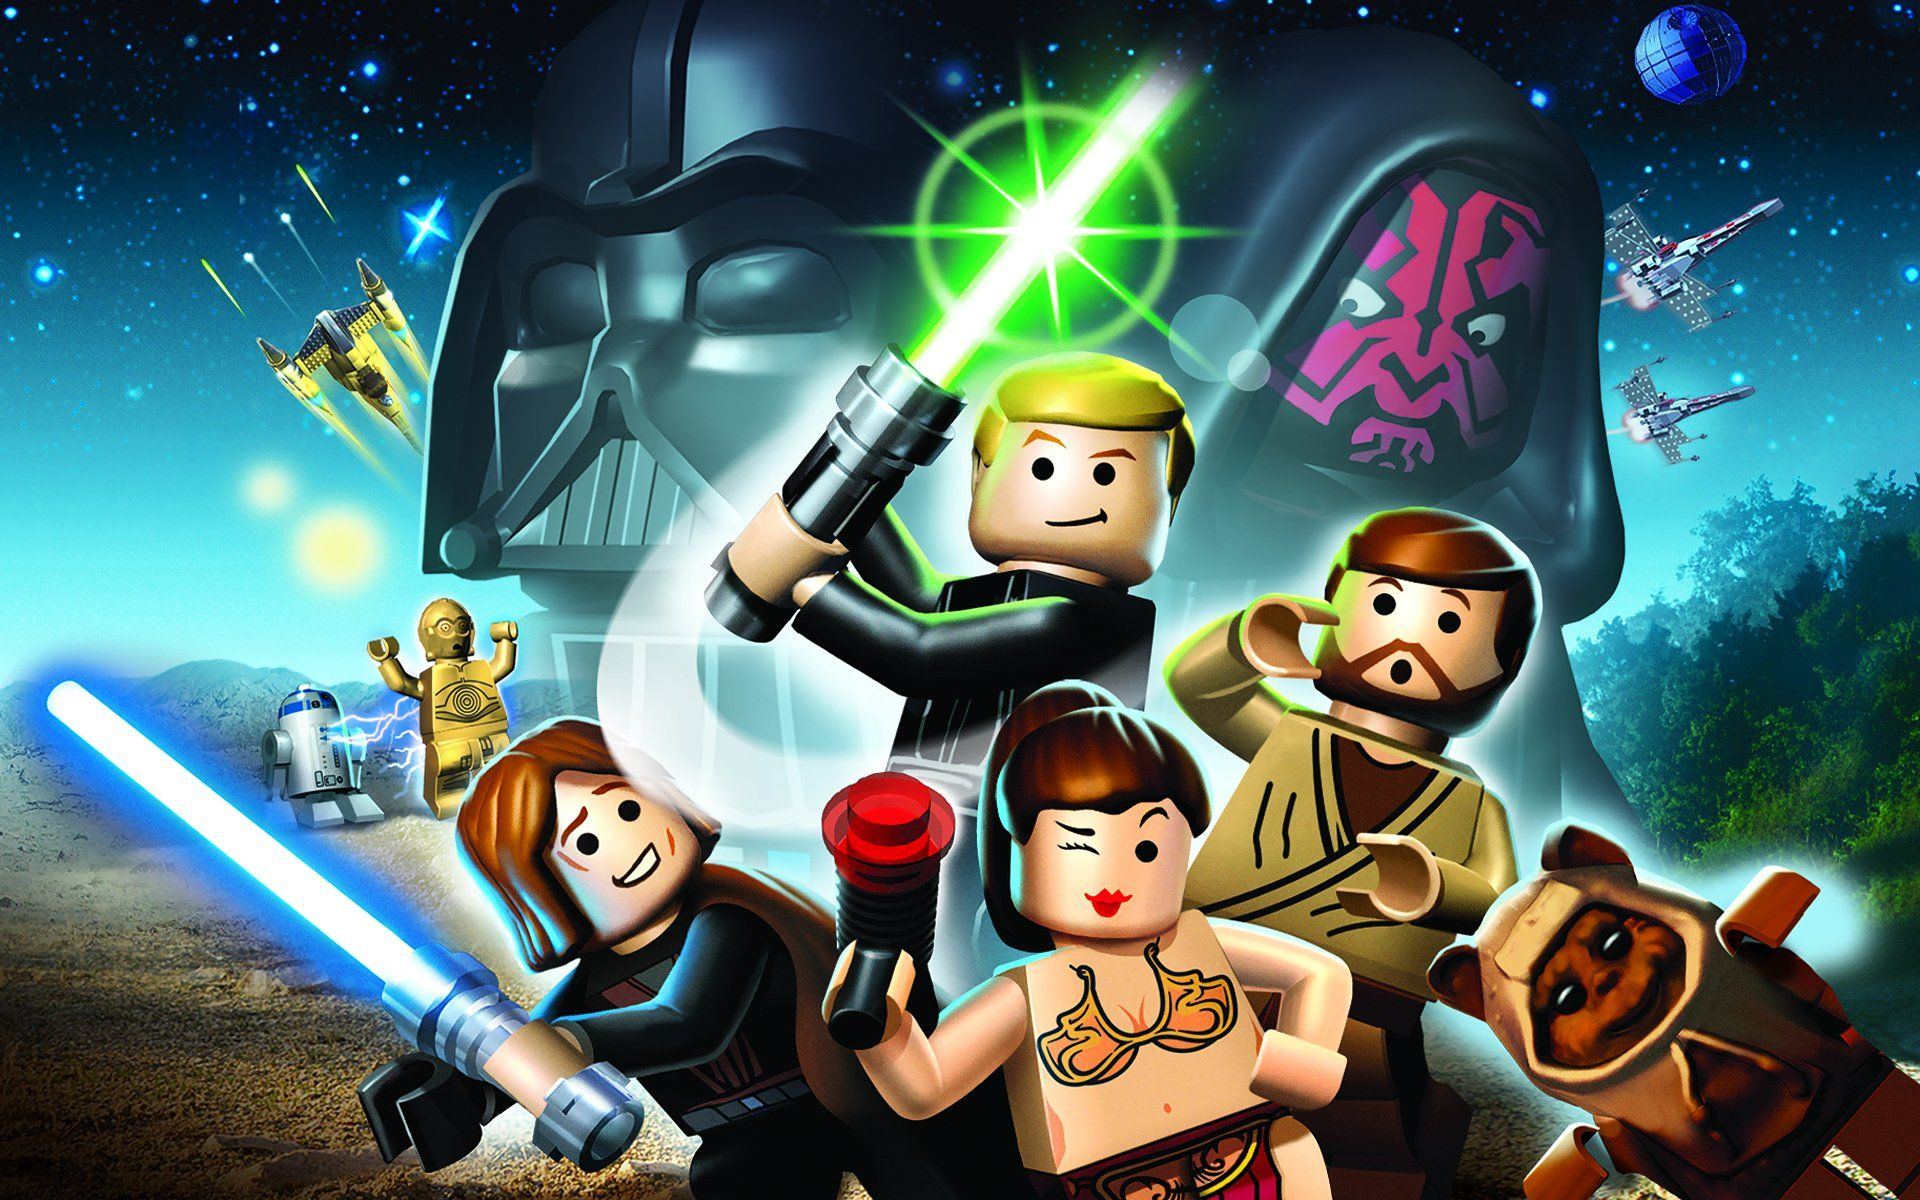 Lego Star Wars Wallpapers Mobile Free Download Star Wars Games Star Wars Pictures Lego Star Wars